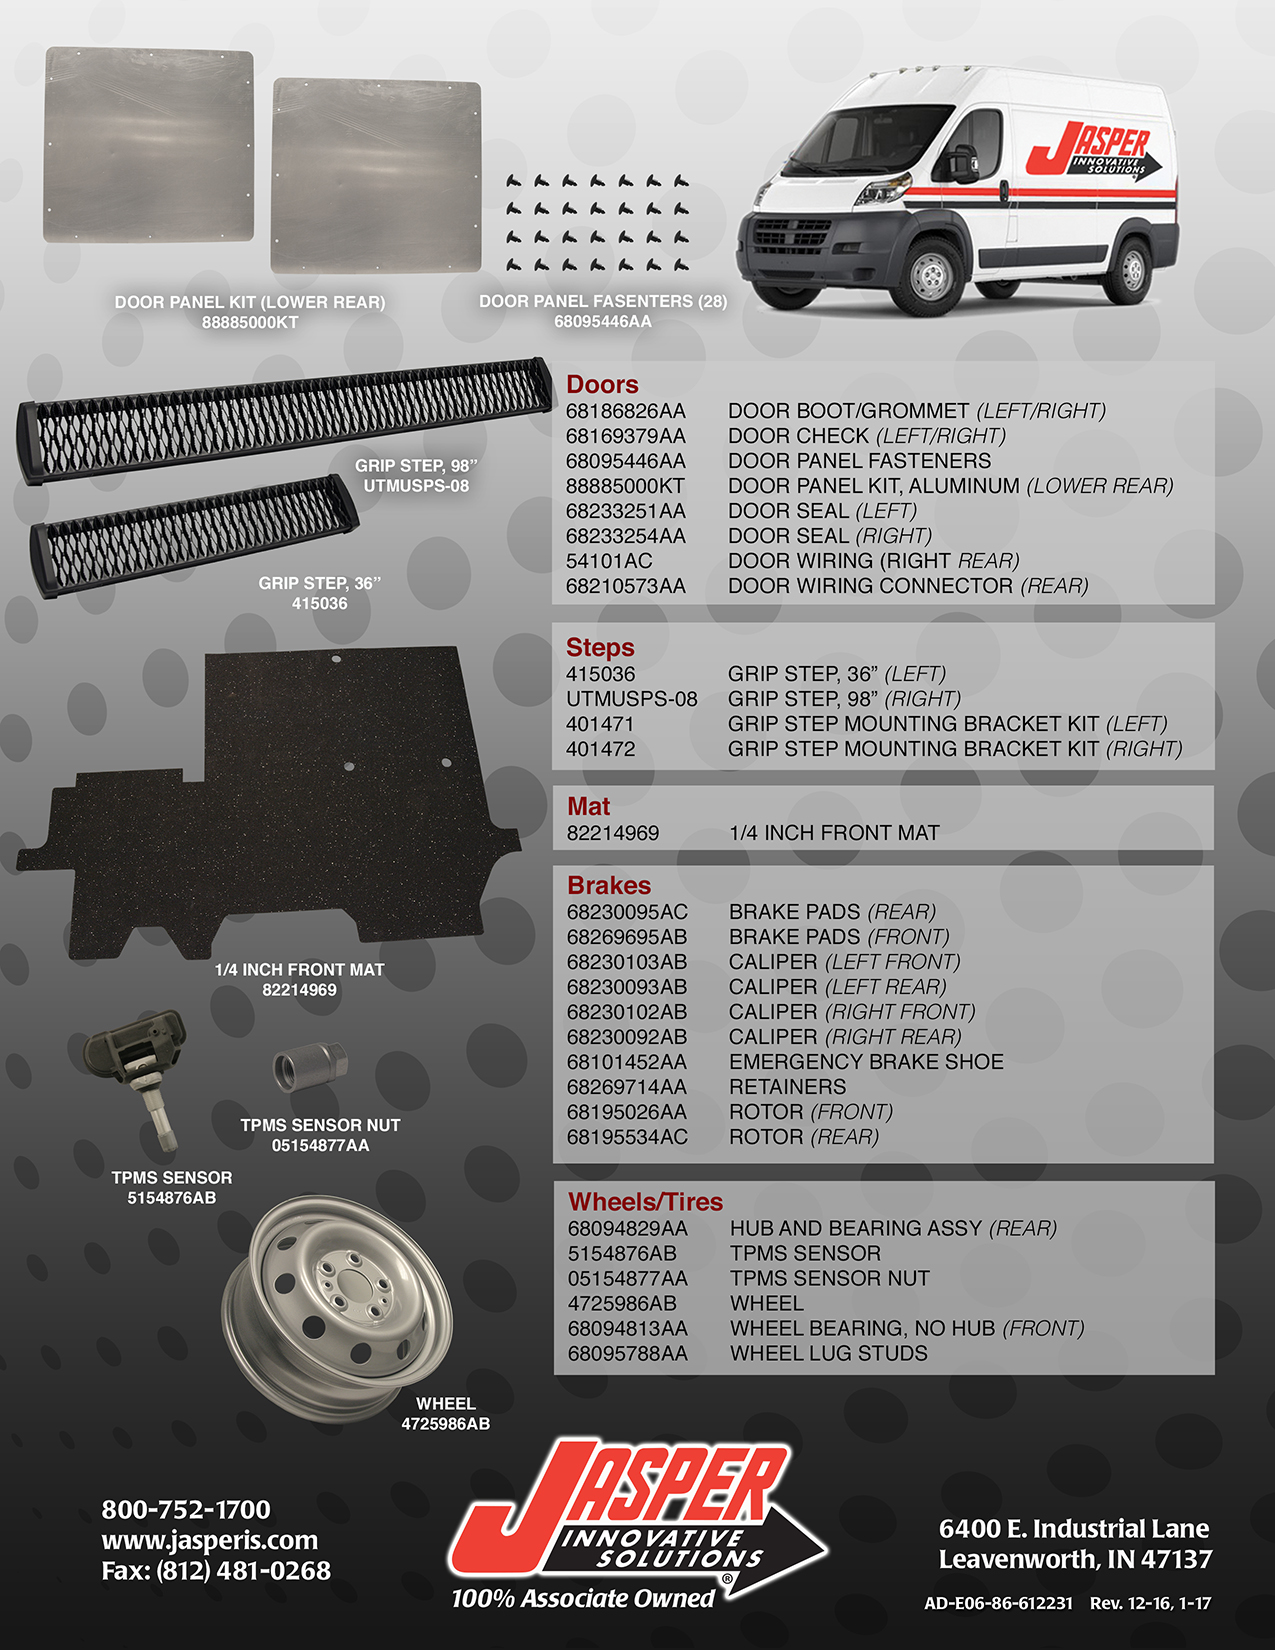 Ram Promaster Jasper Innovative Solutions Llv Mail Truck Fuel Filter Part Number Description Application